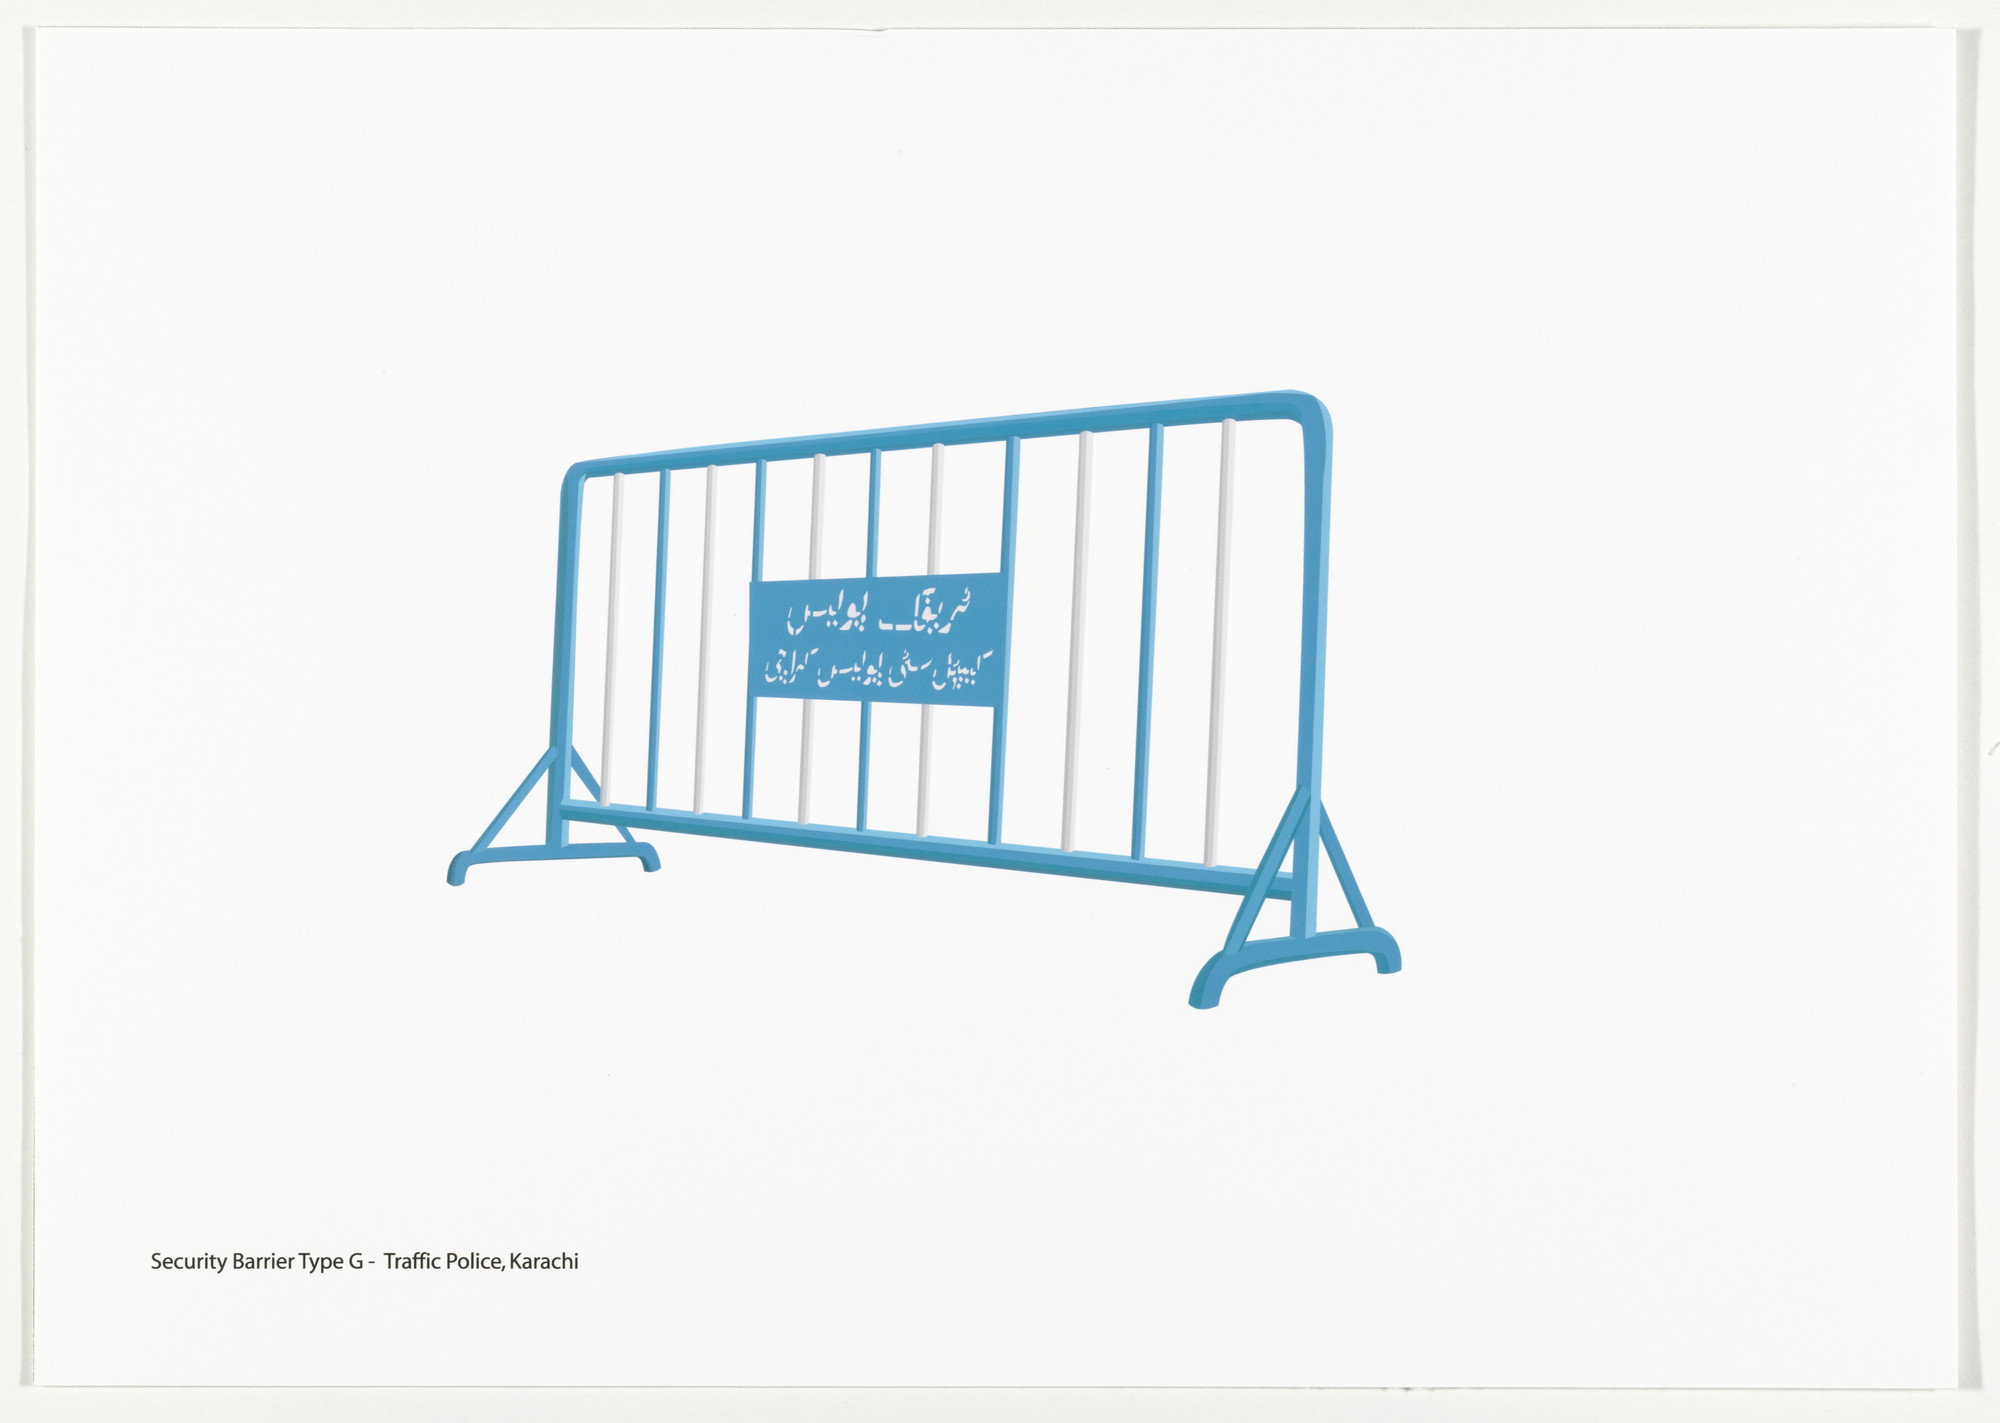 Bani Abidi. Security Barrier Type G from Security Barriers A-L. 2008